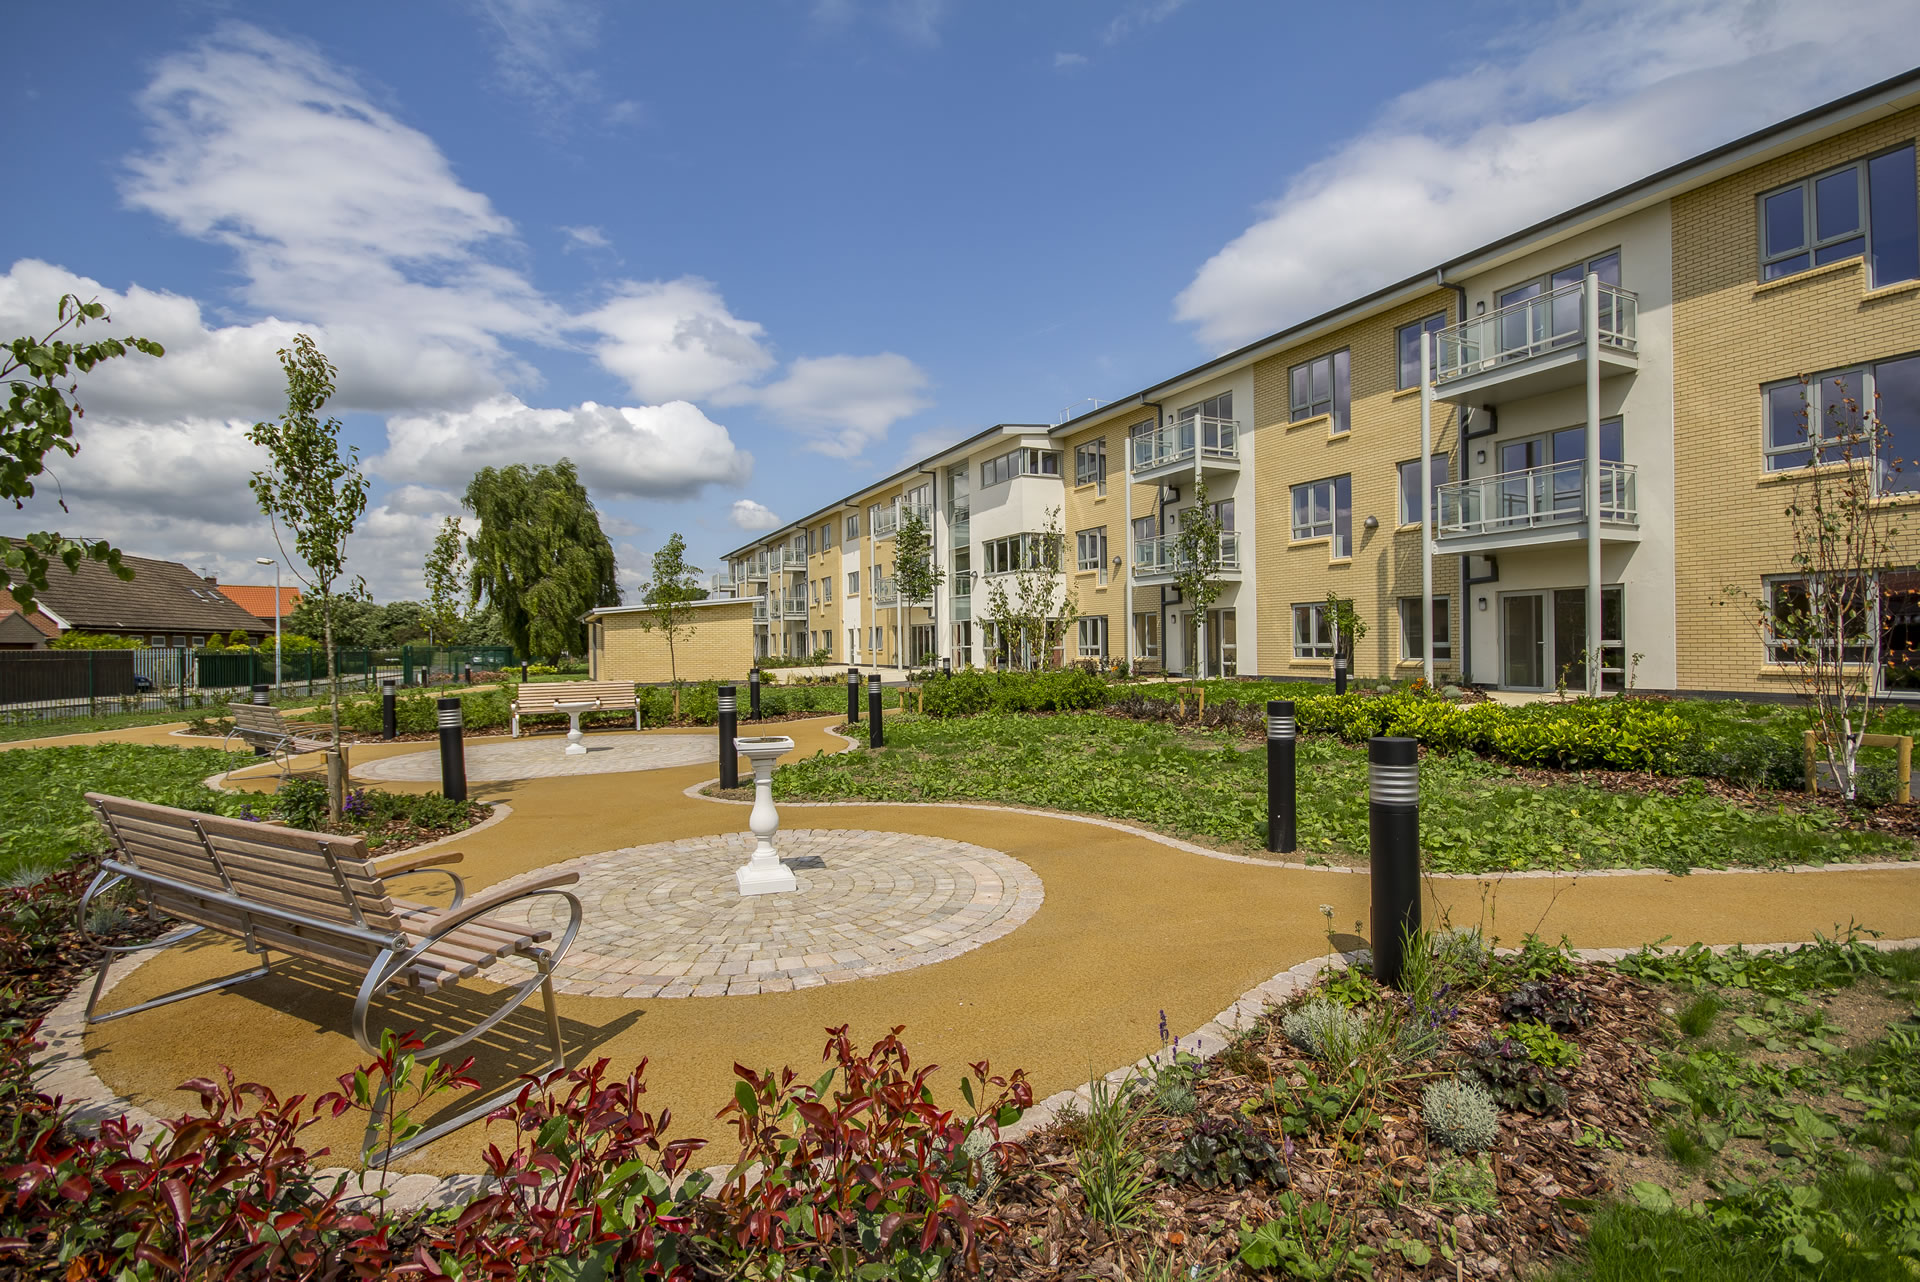 Beverley extra care